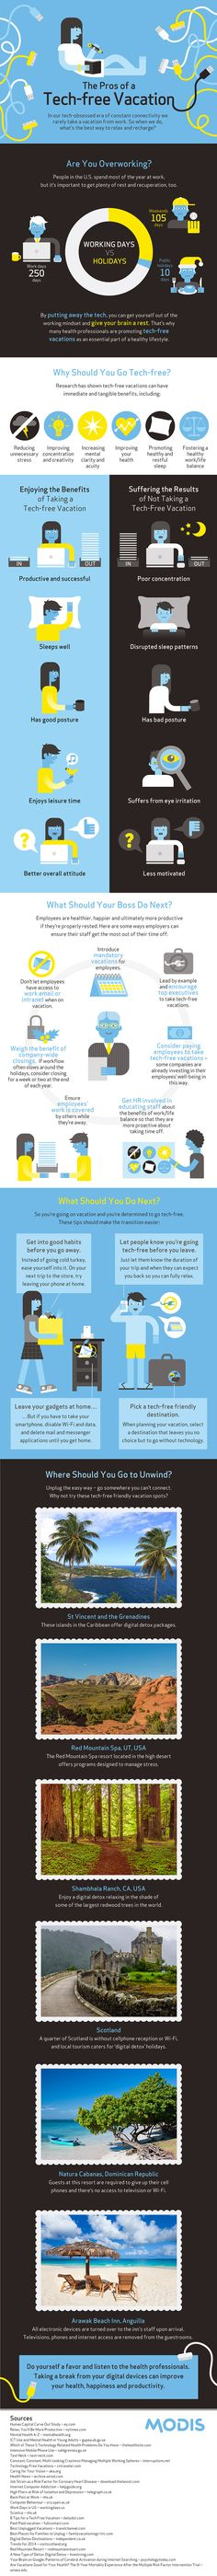 Infographic: The pros of a Tech-free Vacation